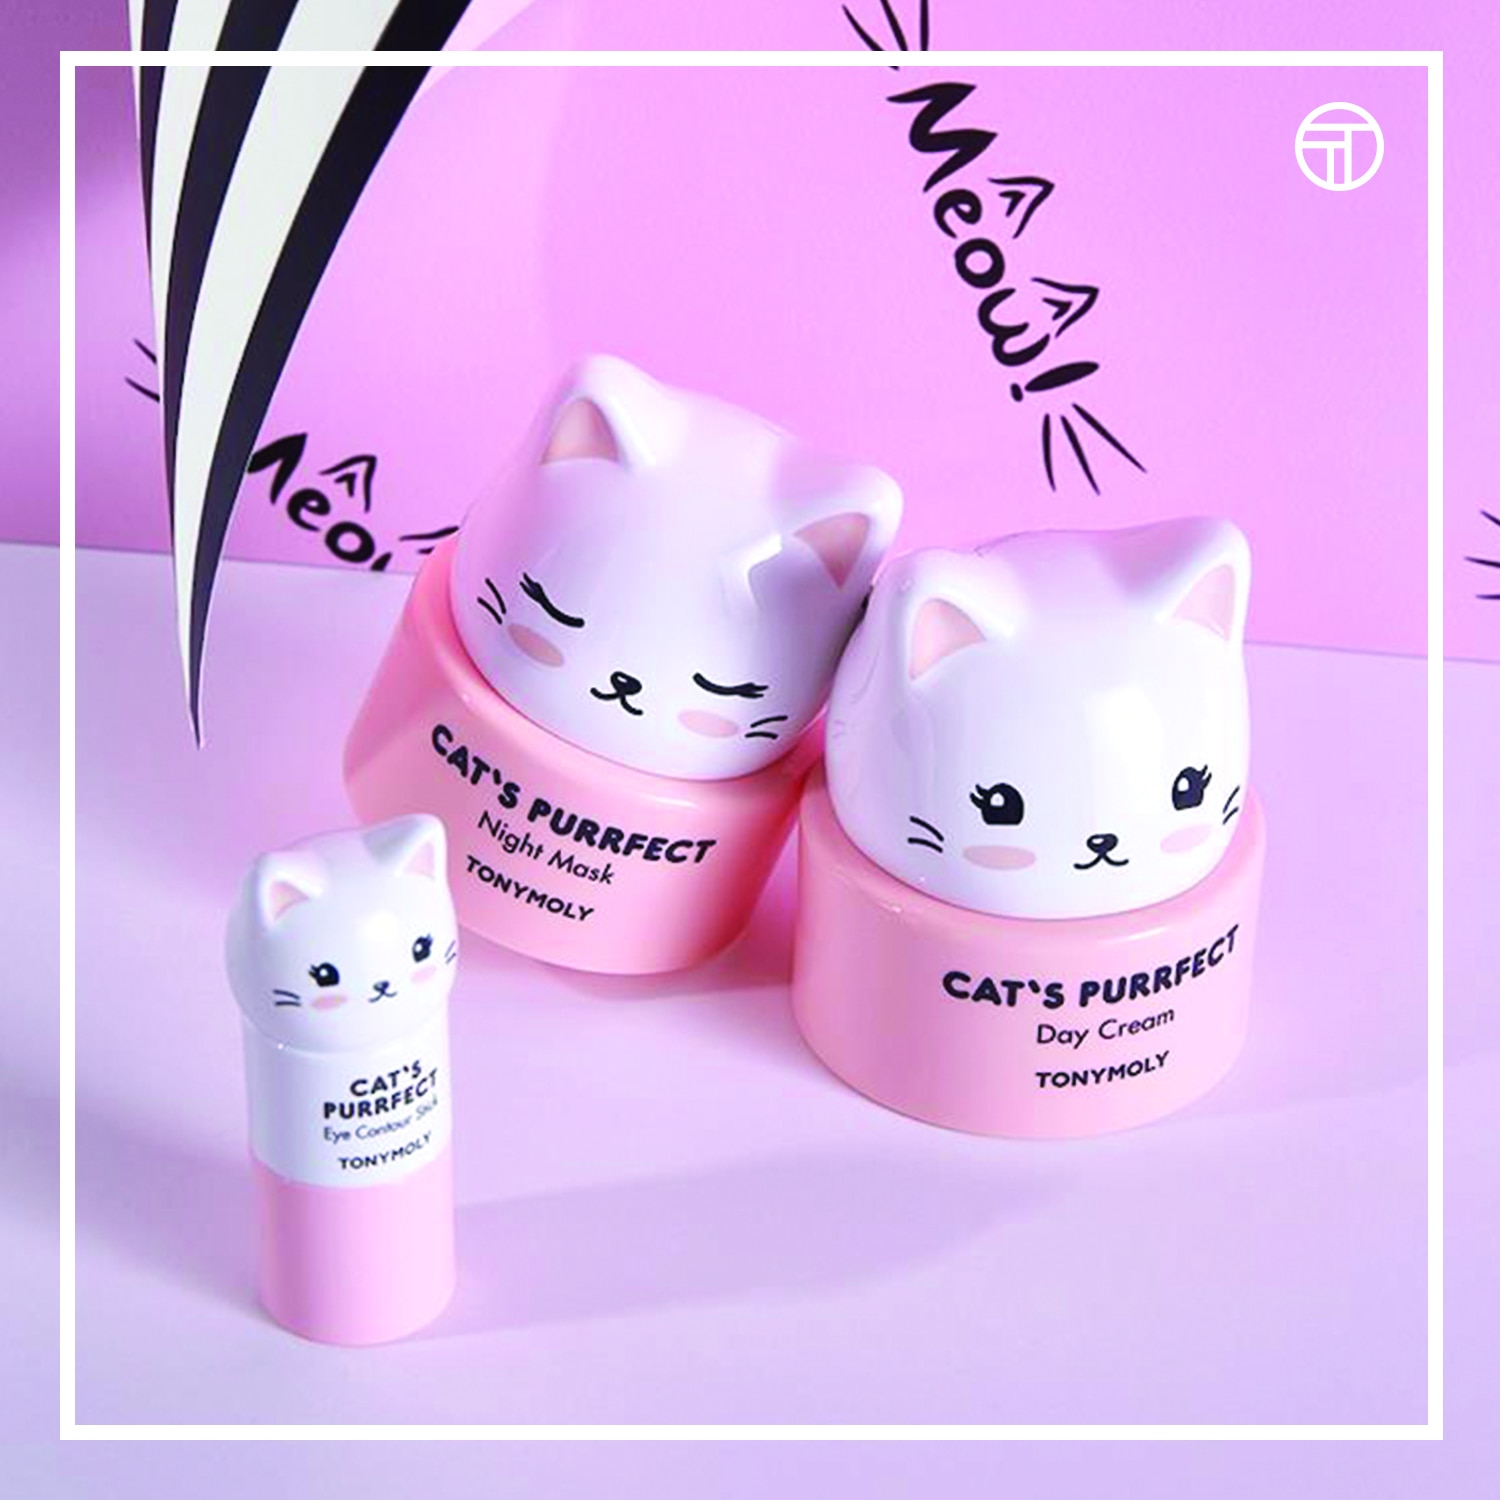 CATS PURRFECT MOISTURIZING NIGHT MASK 50GR